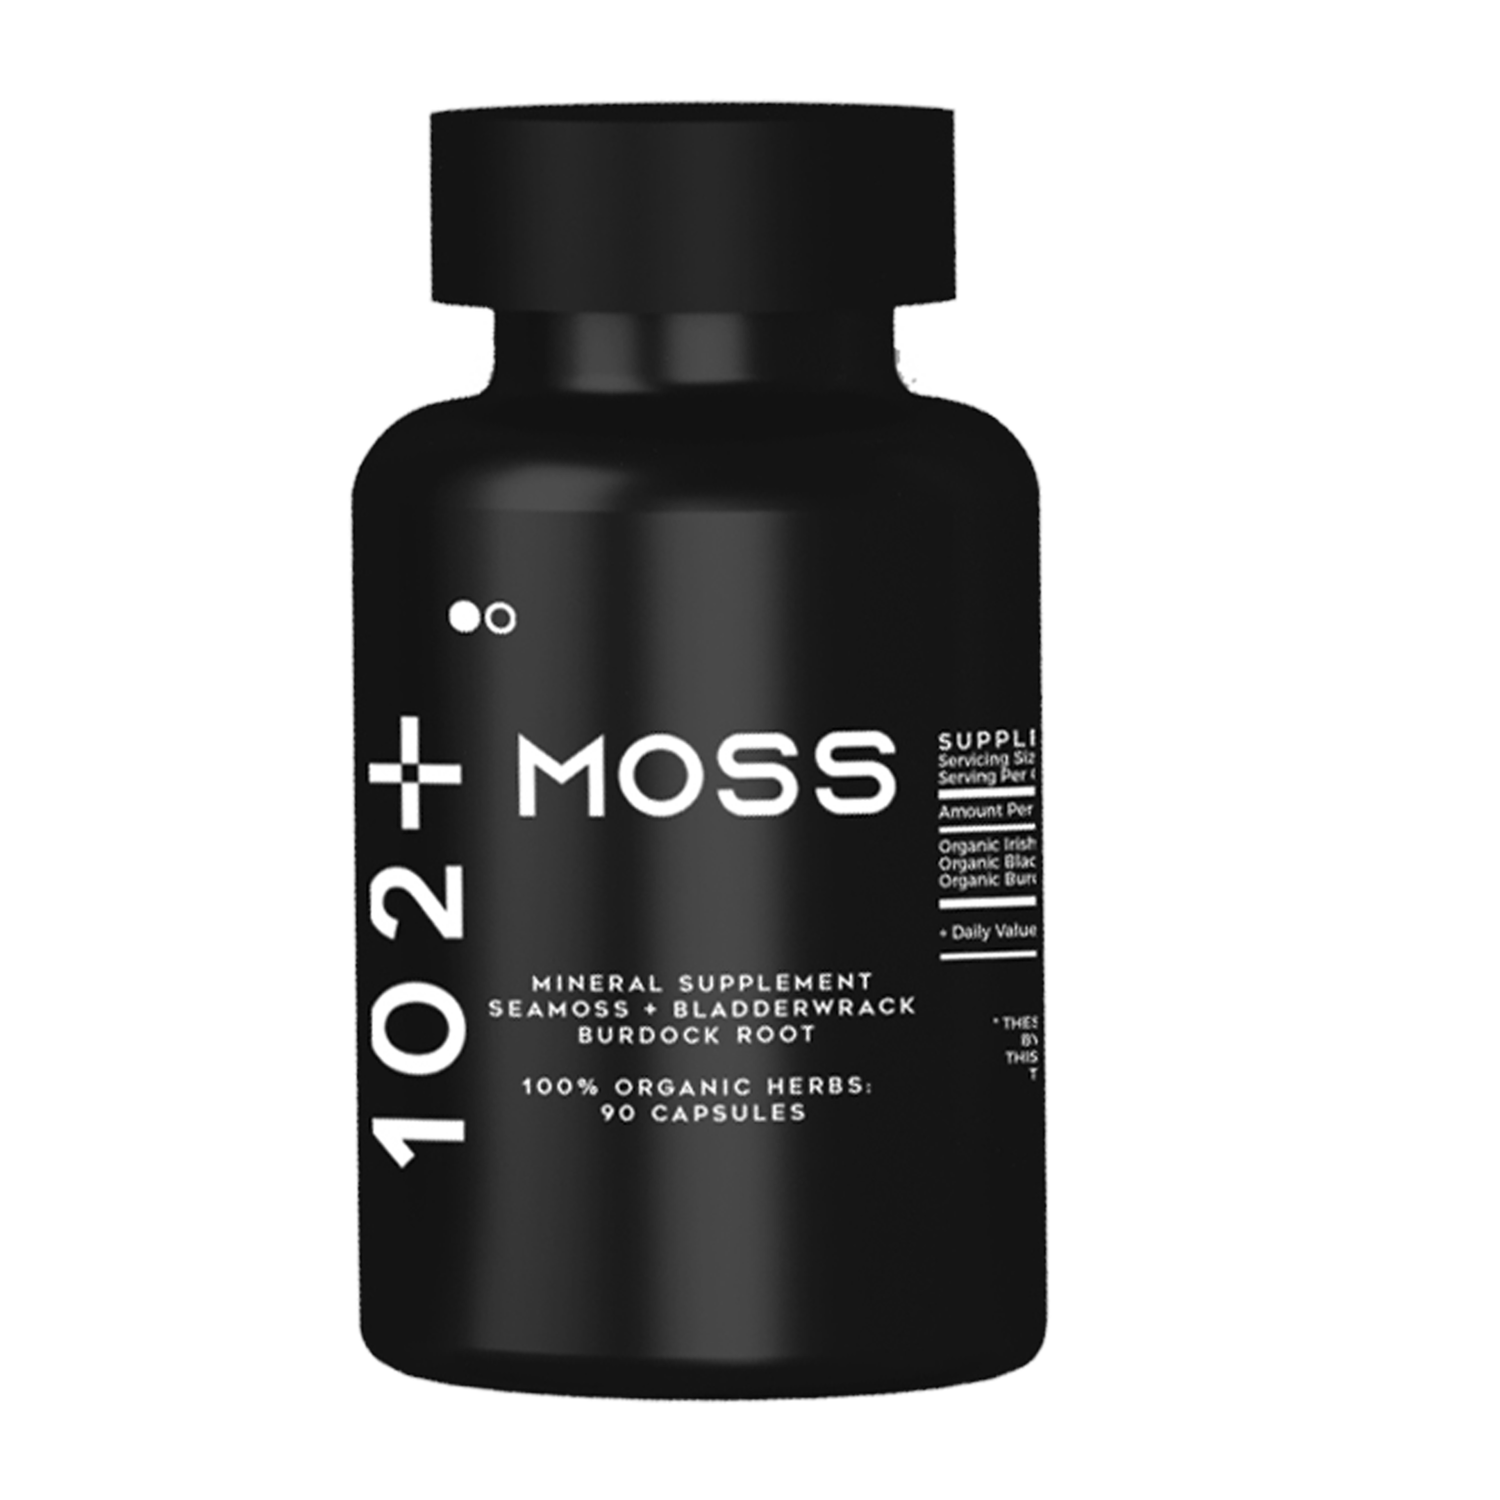 Moss Mineral Supplement